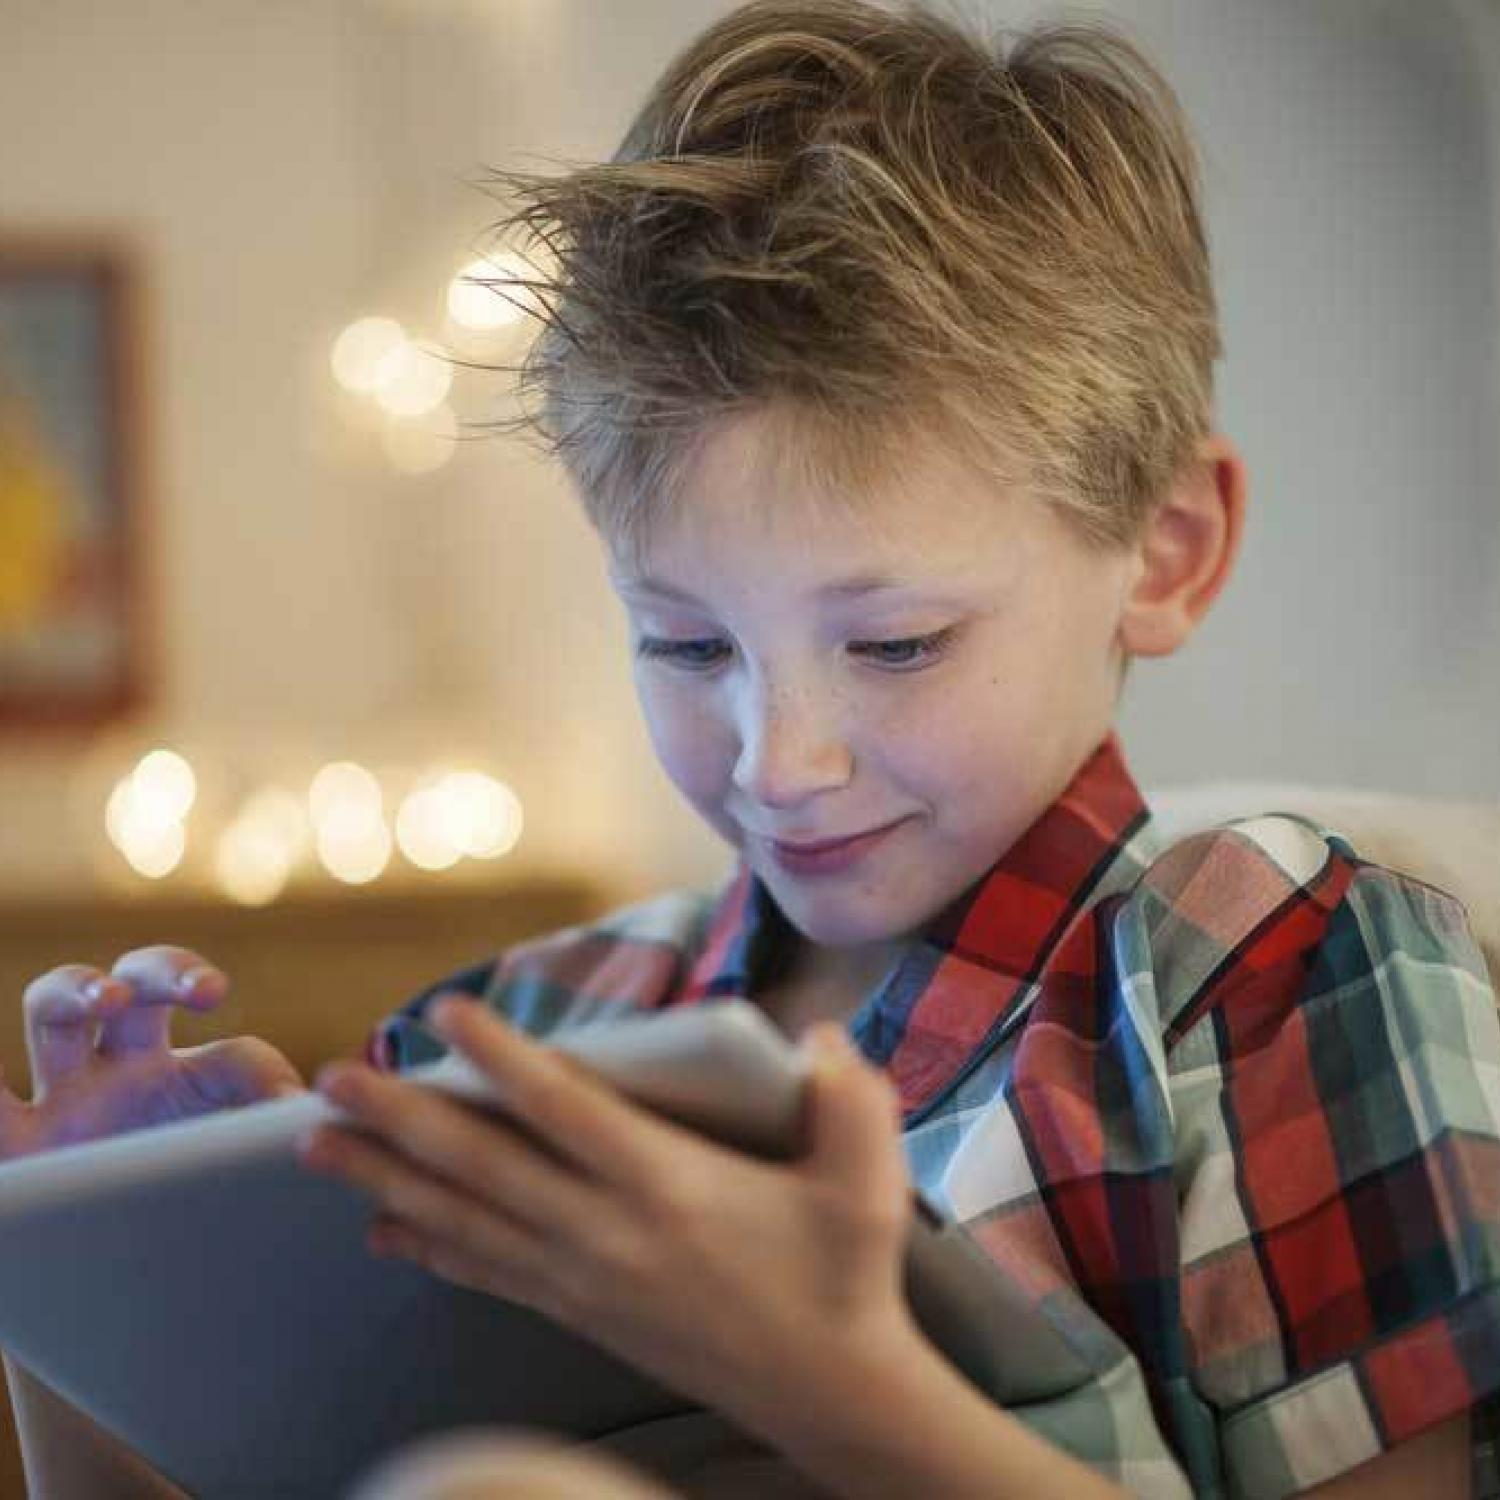 11 Expert Re mended Autism Apps for Kids